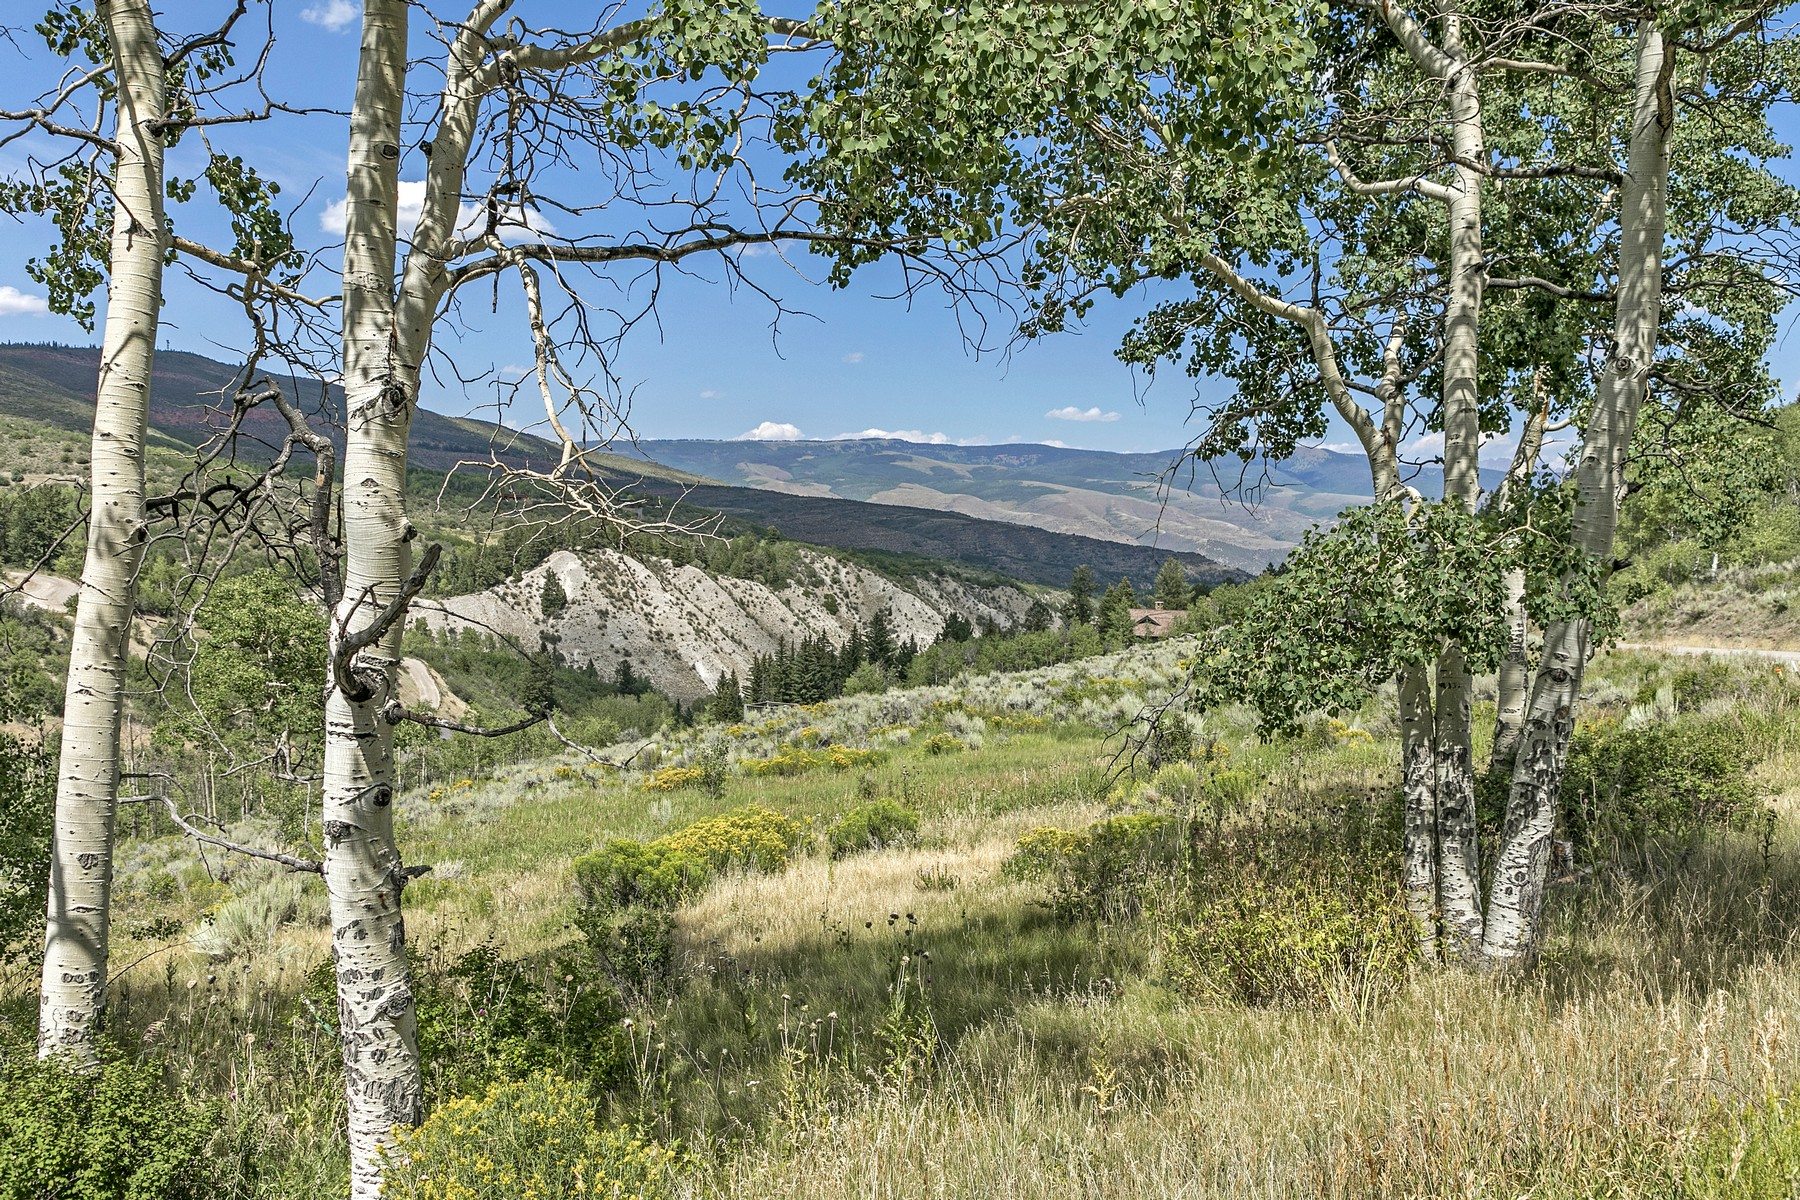 Property for Active at Lot with with panoramic views 483 Graham Road Edwards, Colorado 81632 United States